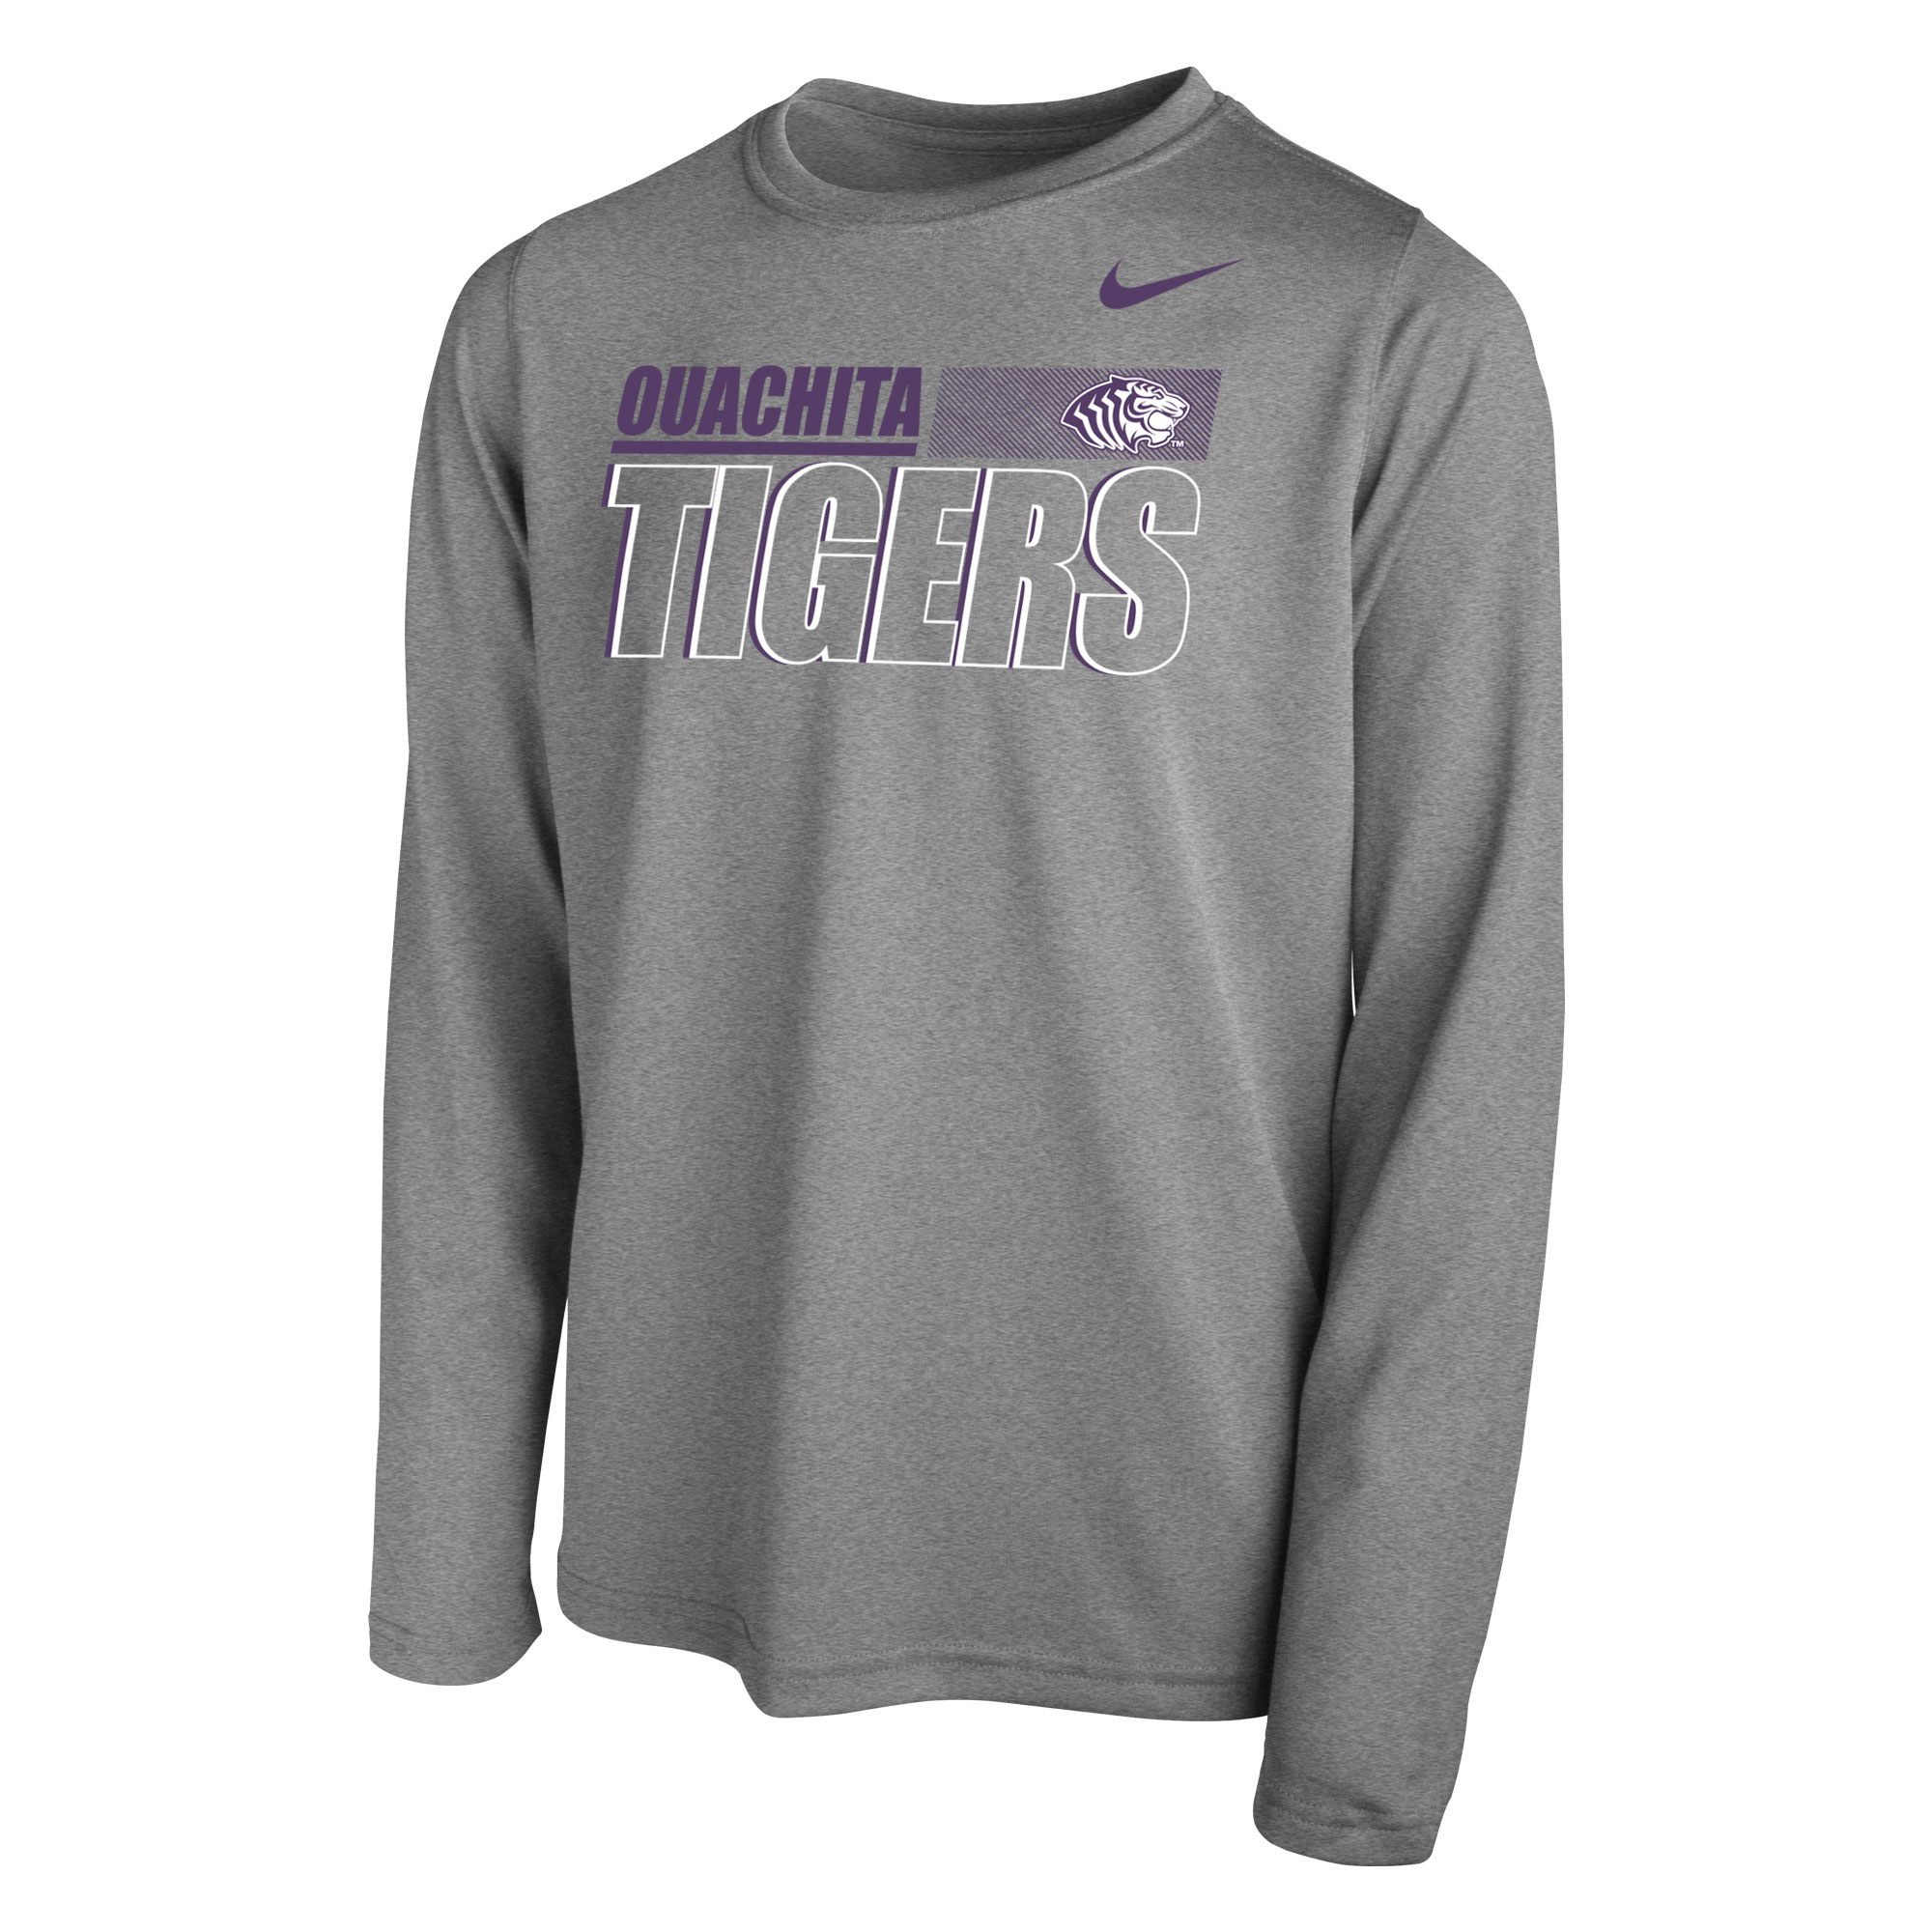 OUACHITA TIGERS NIKE LEGEND YOUTH LS TEE